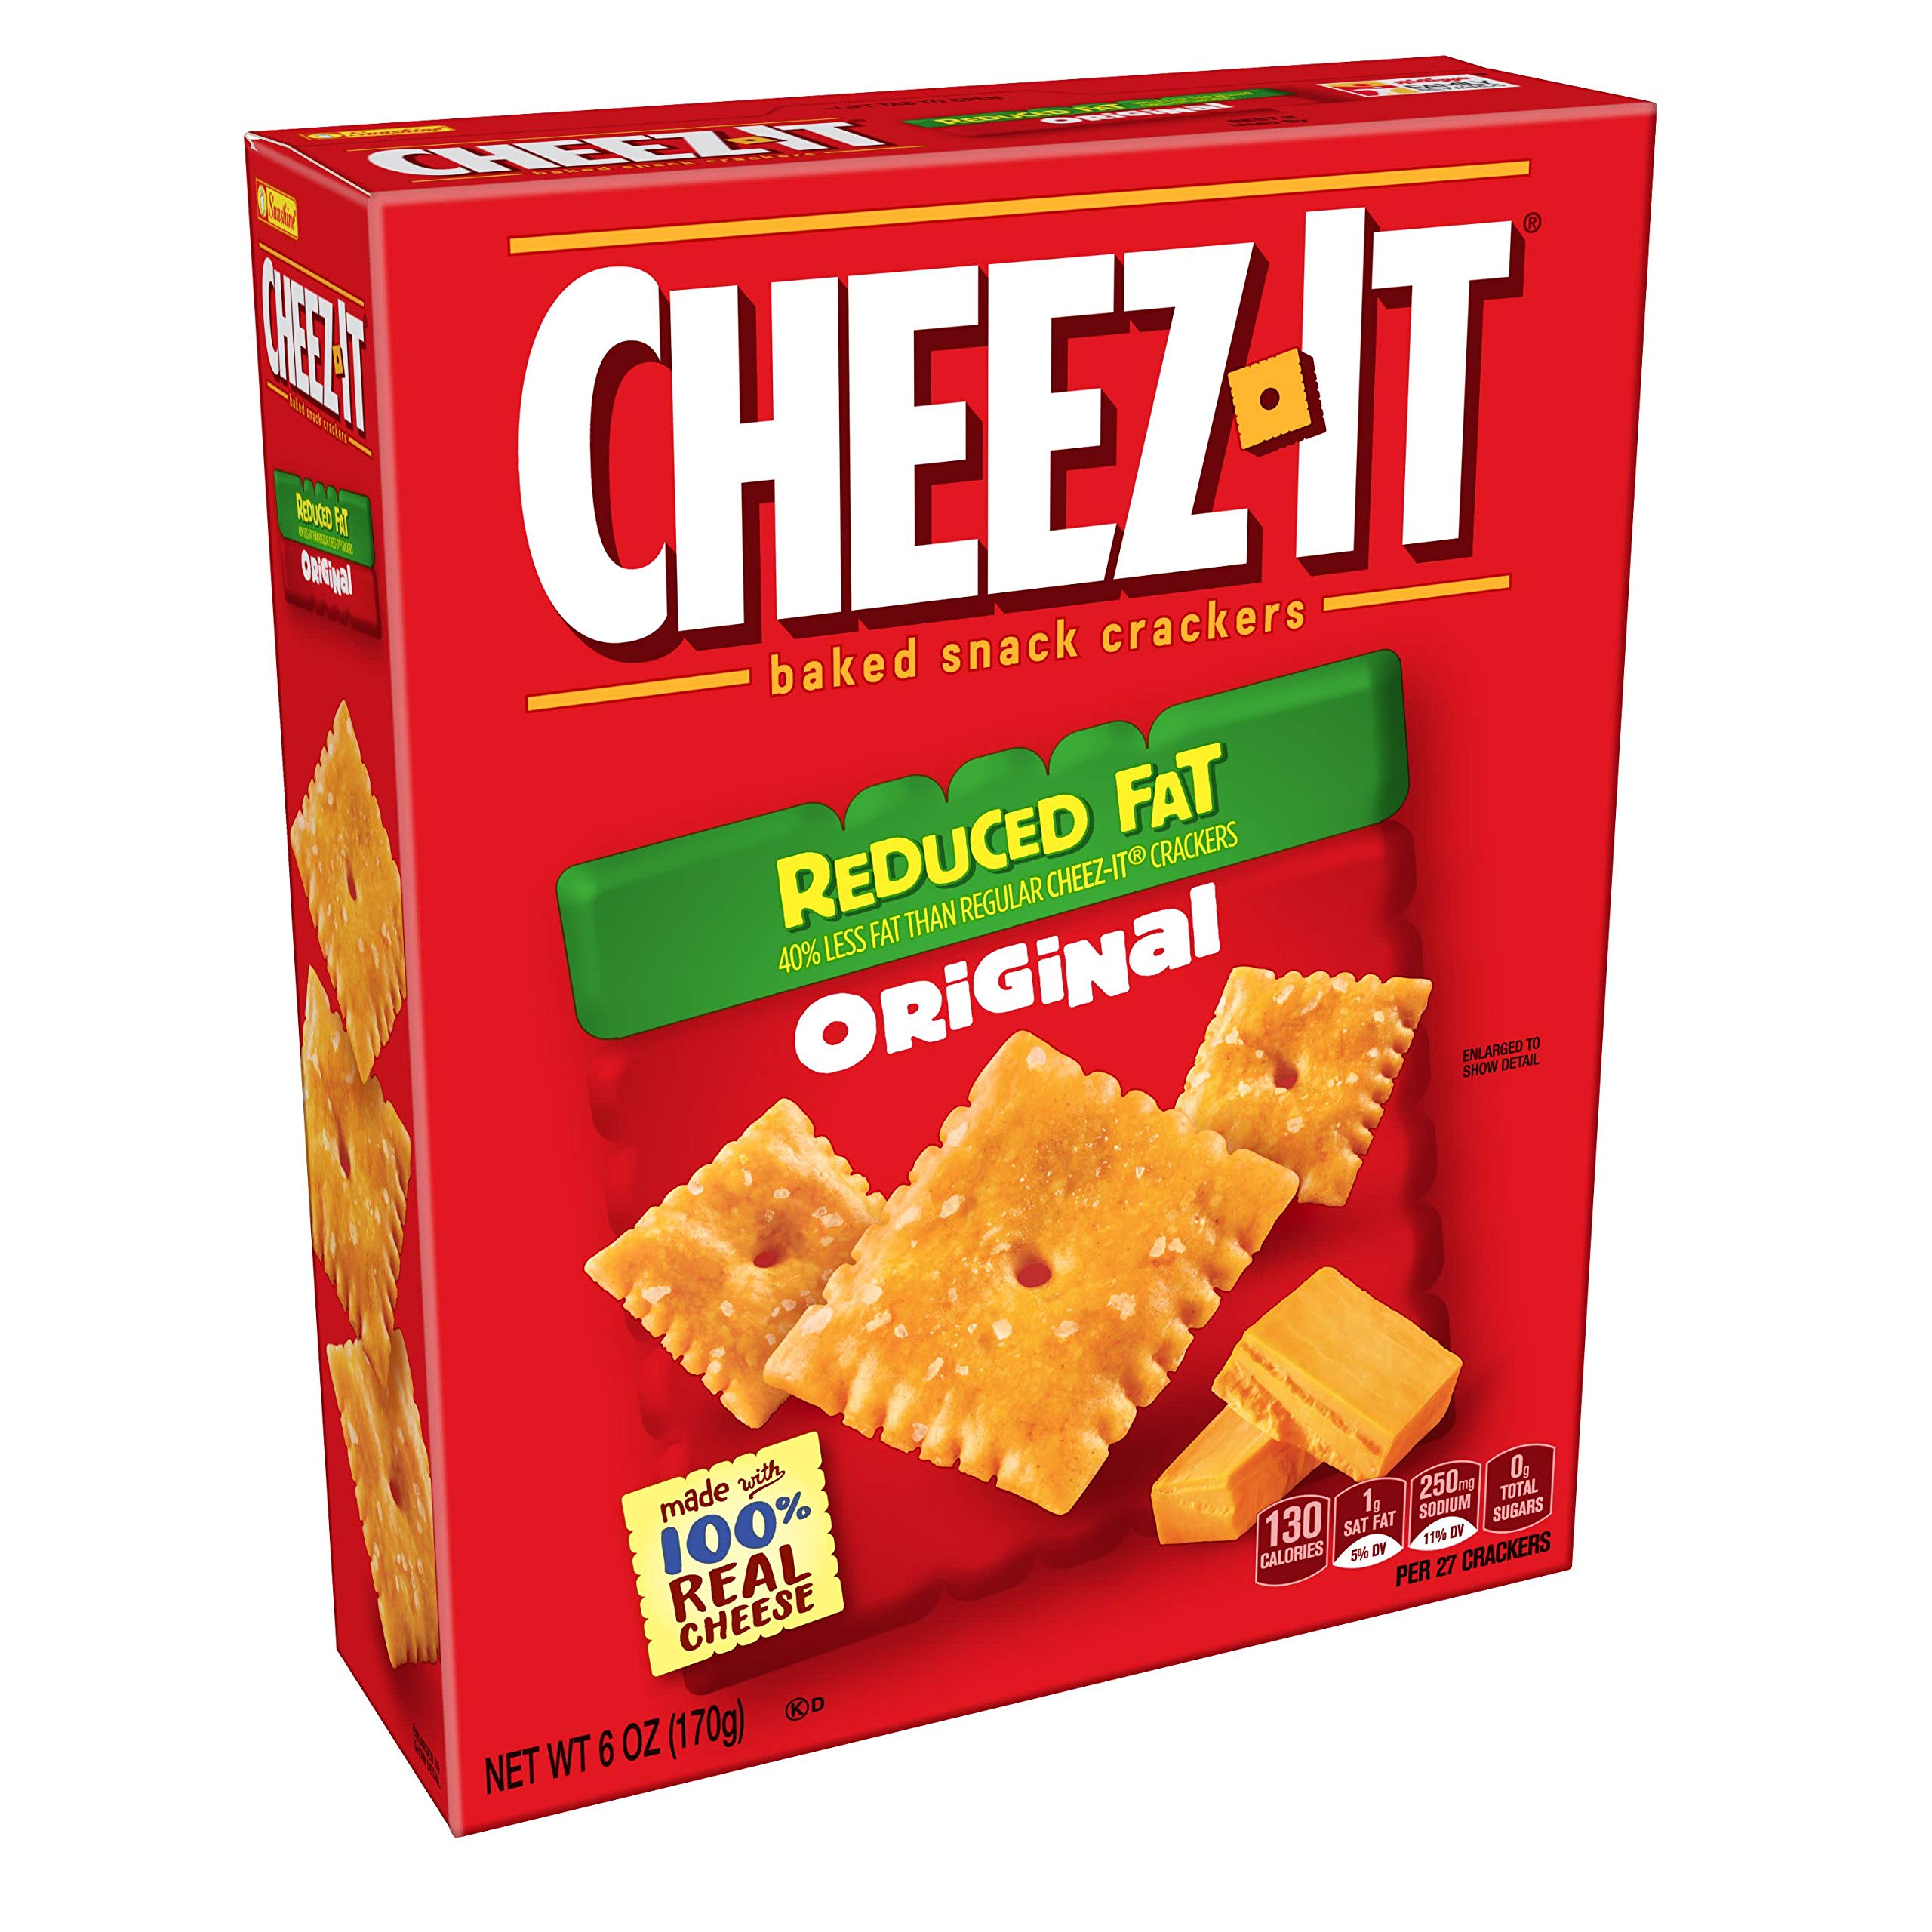 Cheez-It Baked Snack Cheese Crackers, Reduced Fat, Original, 6 oz Box(Pack of 12) by Cheez-It